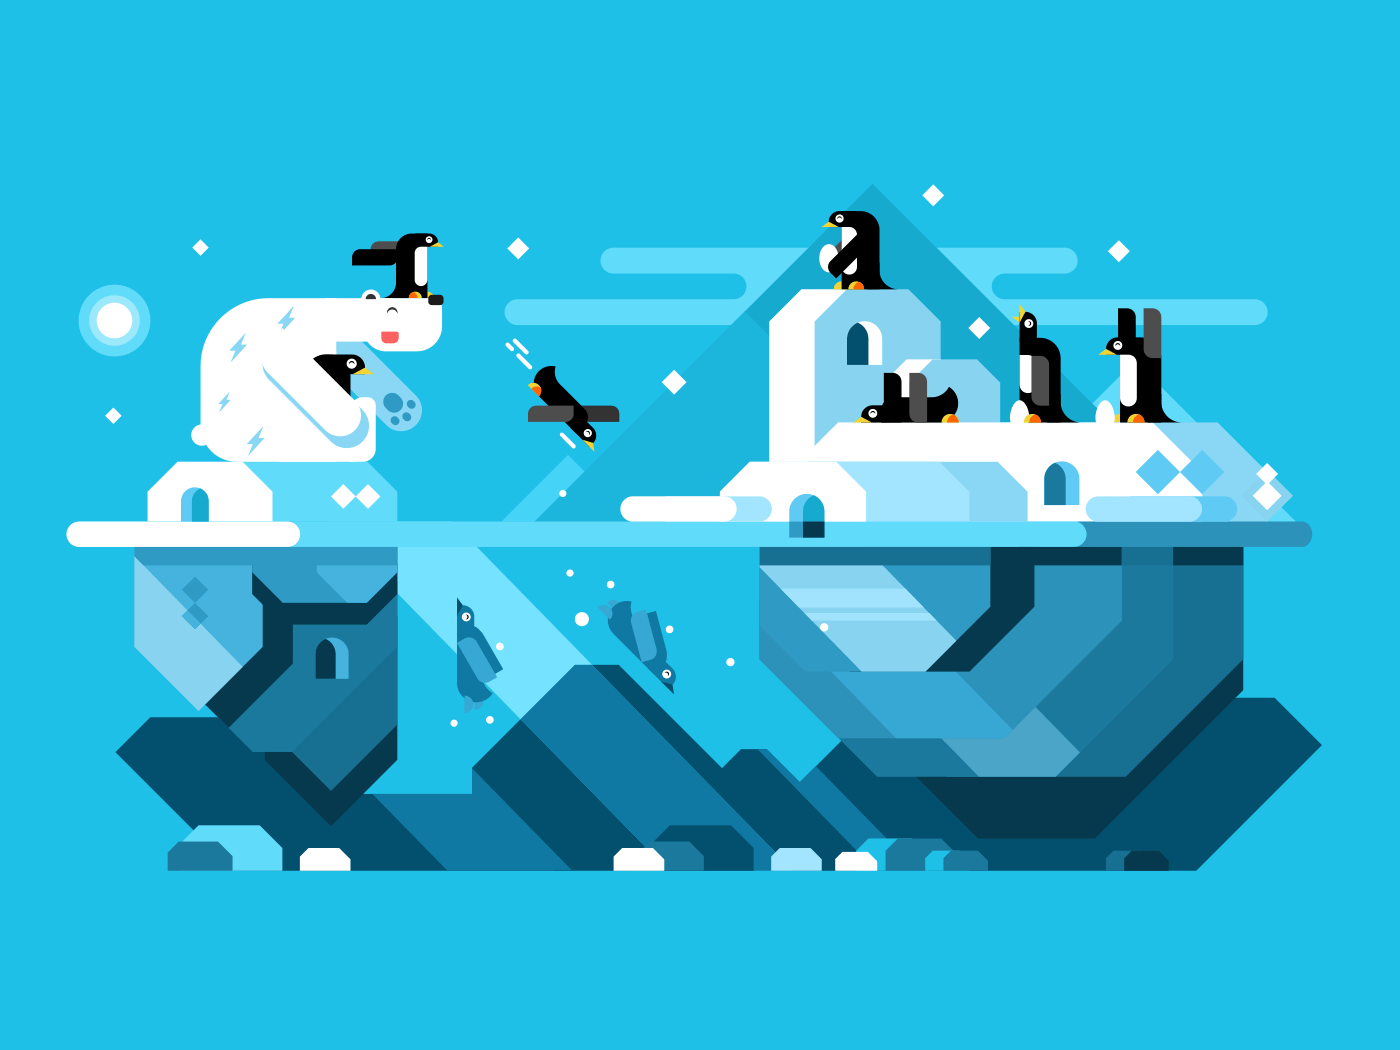 Arctic polar bear with penguins flat vector illustration